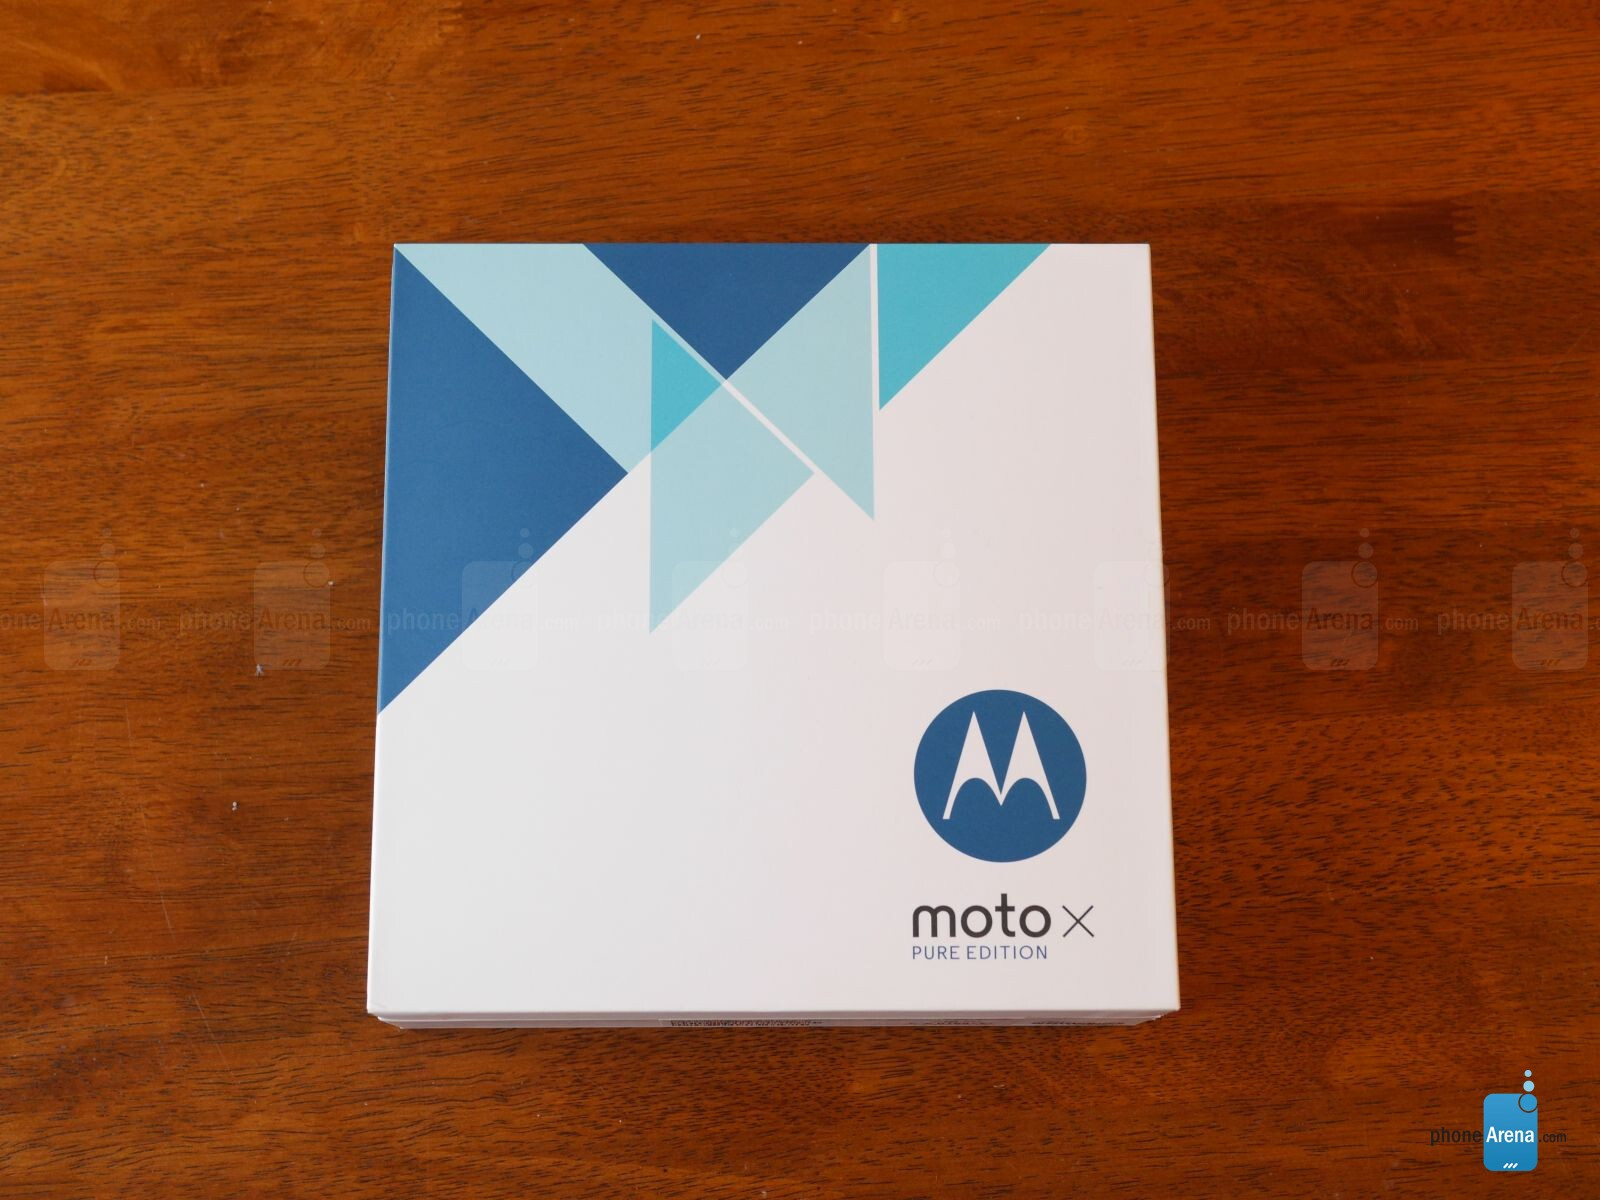 Moto X Pure Edition unboxing